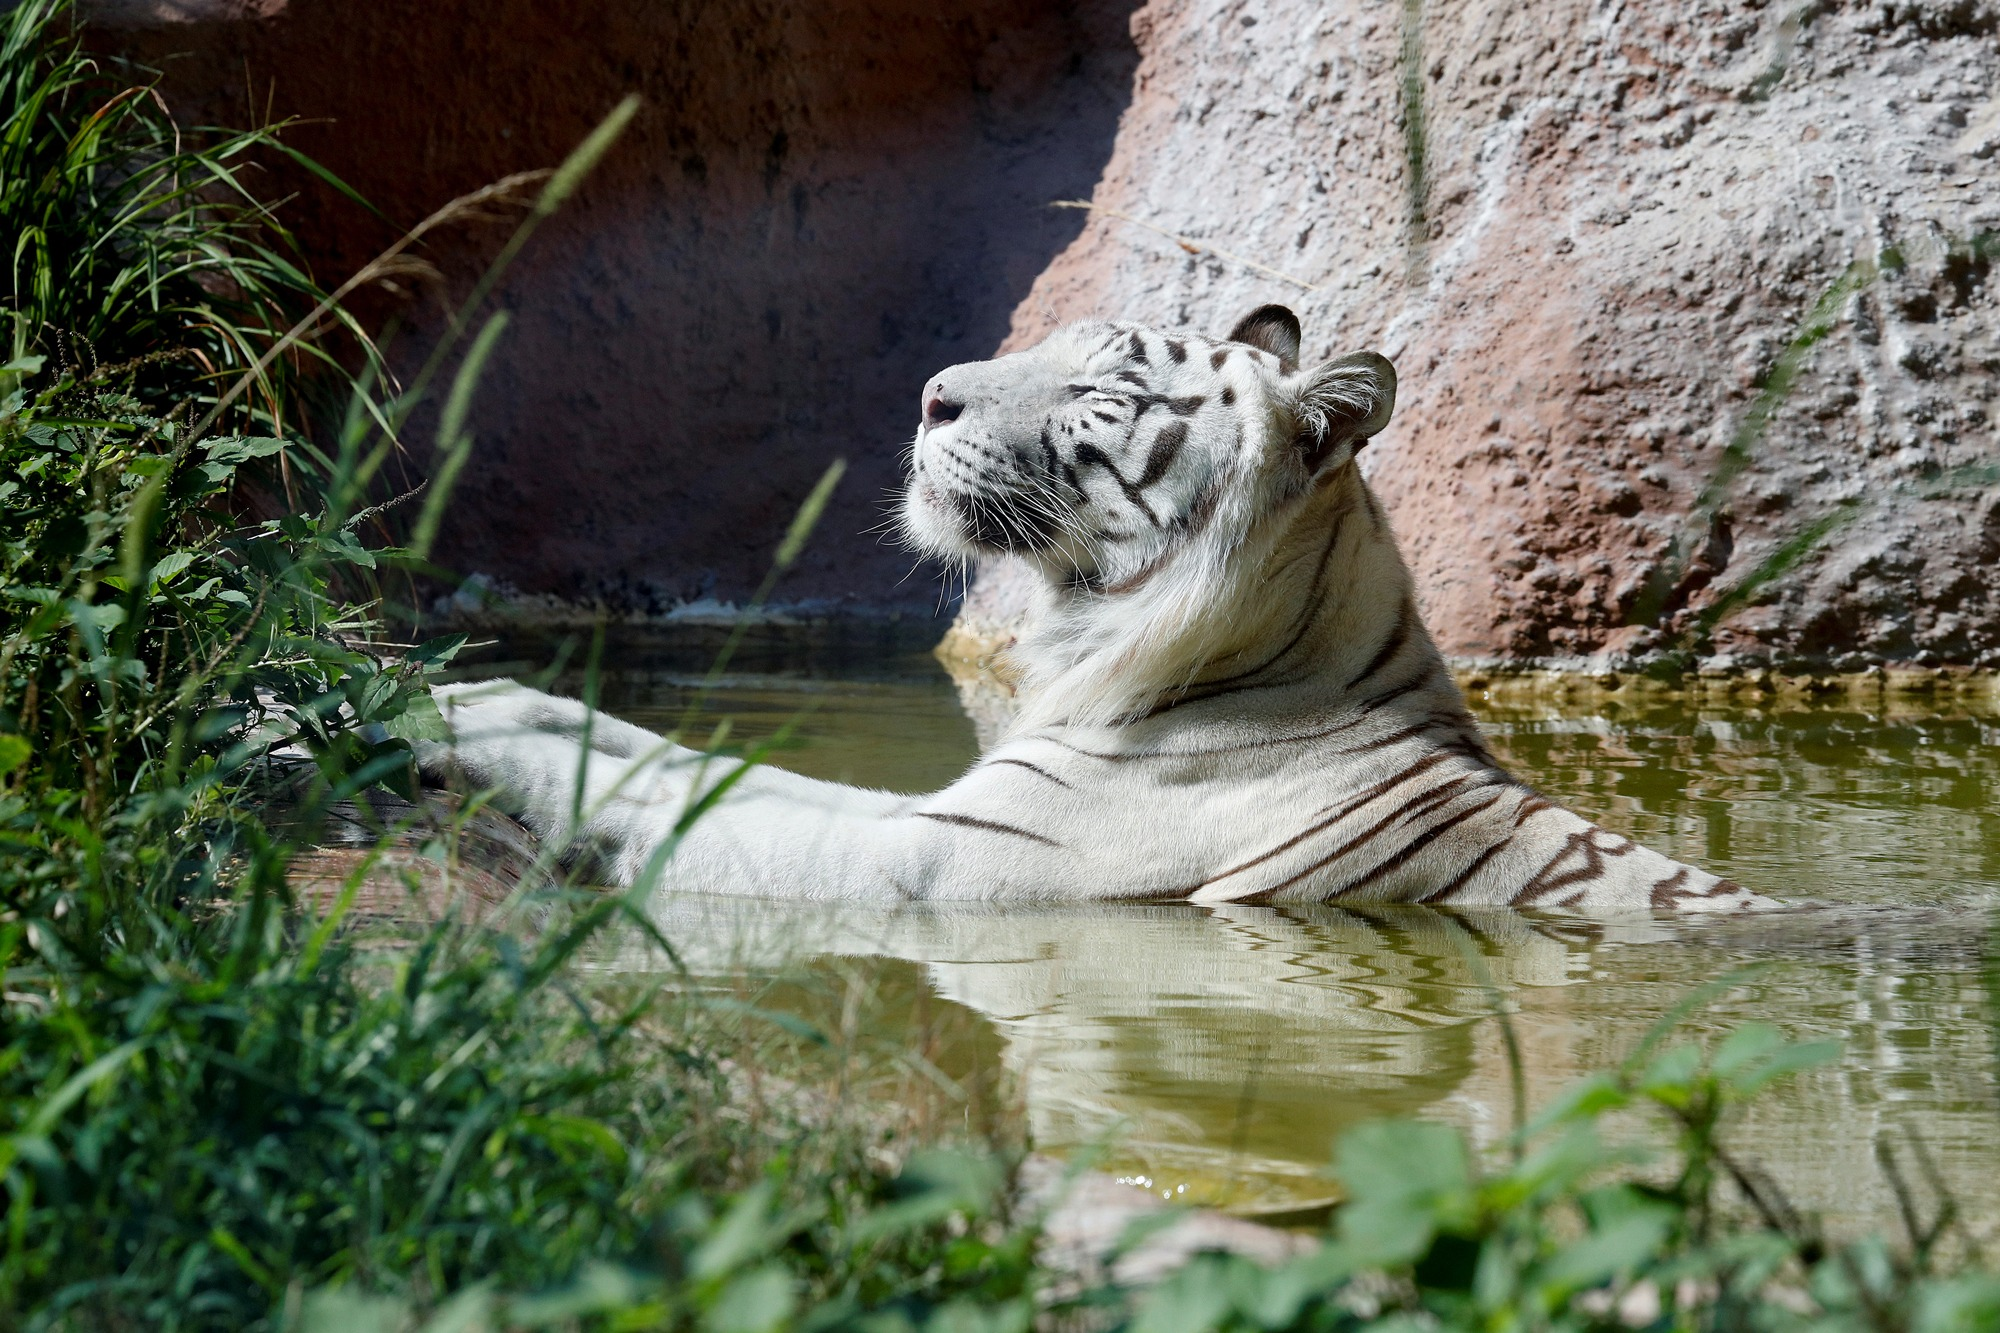 A white tiger cools off in the water at the Biopark zoo in Rome, Italy.